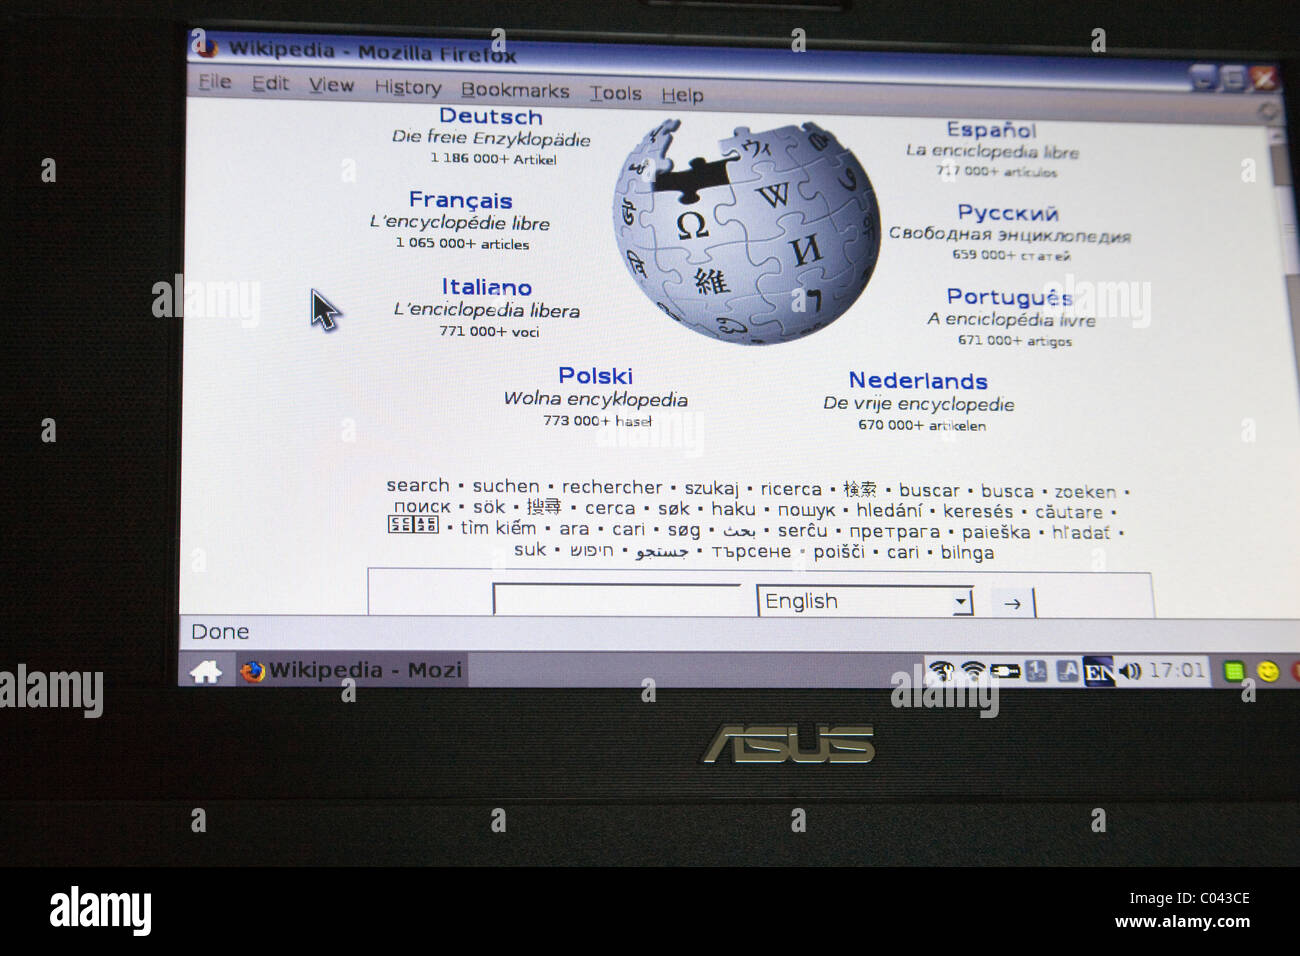 Close up screen of a computer notebook showing Wikipedia